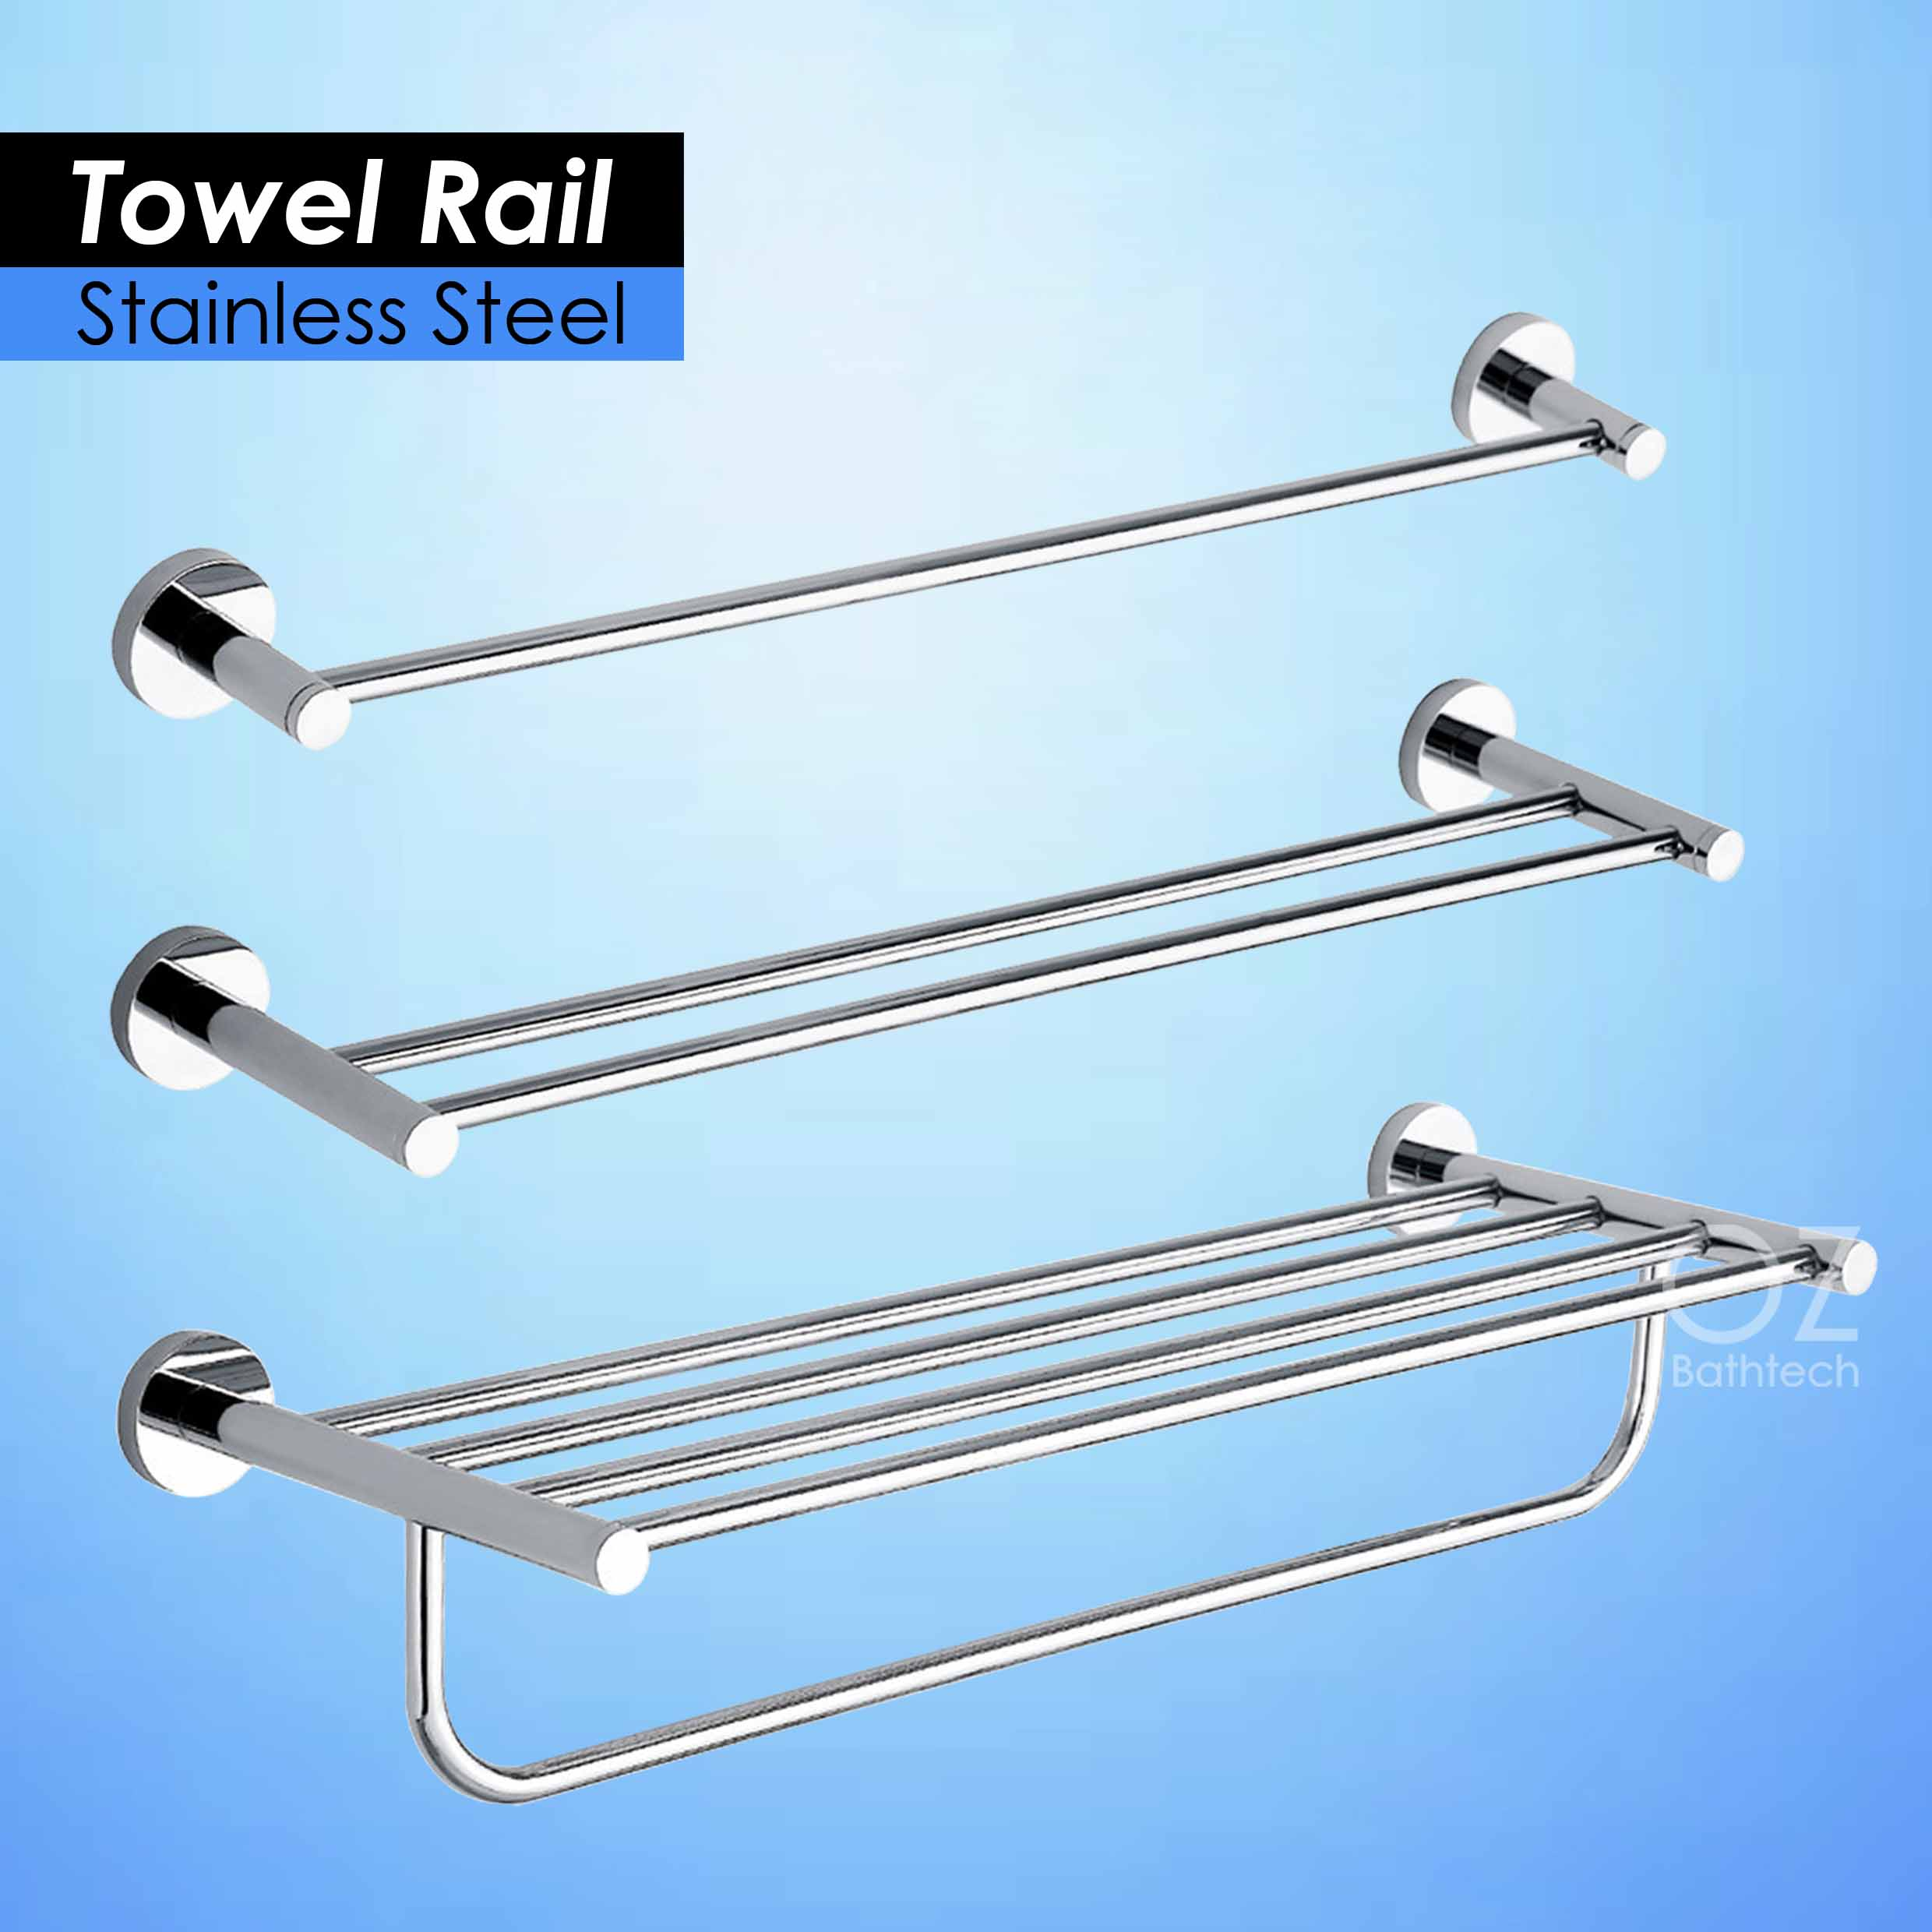 700mm Round Towel Rack Rails Bar Bathroom Shelf Holder Stainless ...